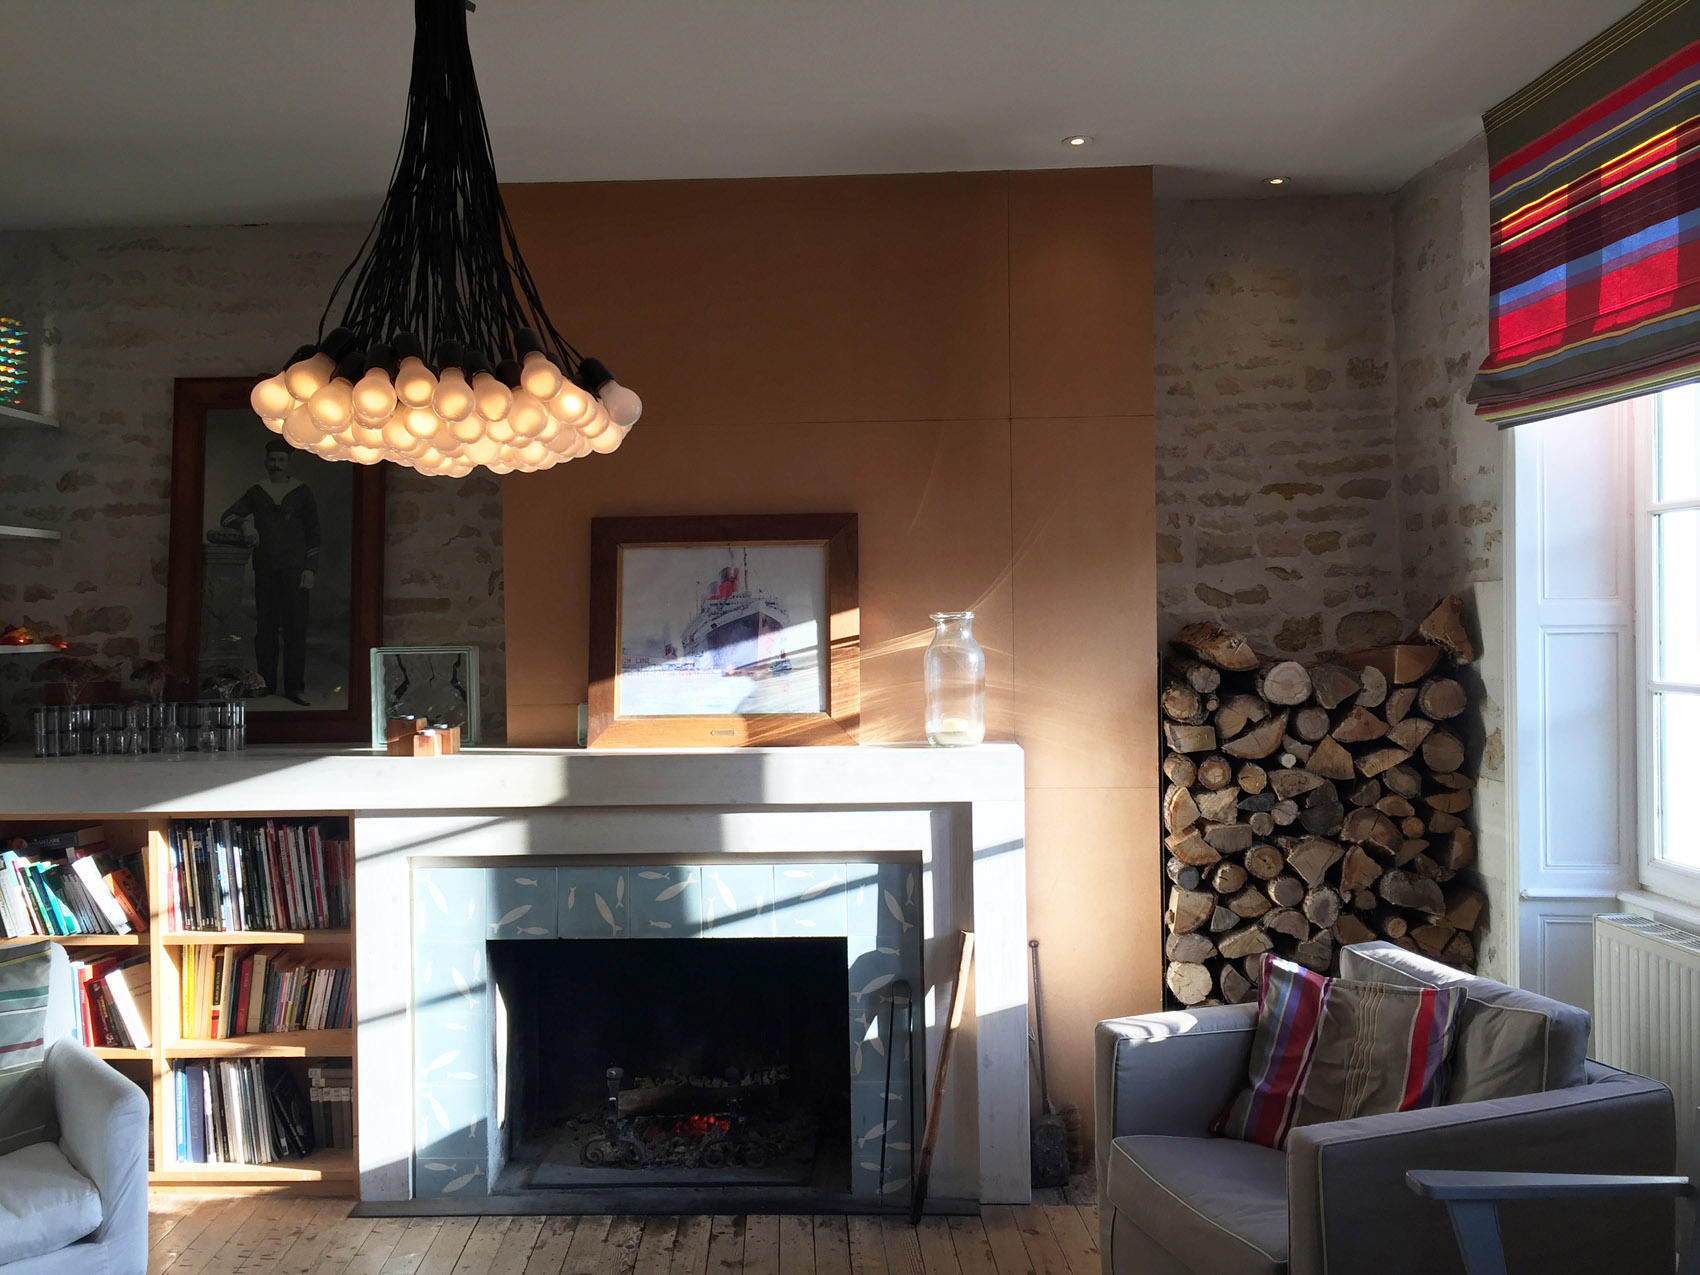 Room with fireplace - Hotel Le Senechal (17)